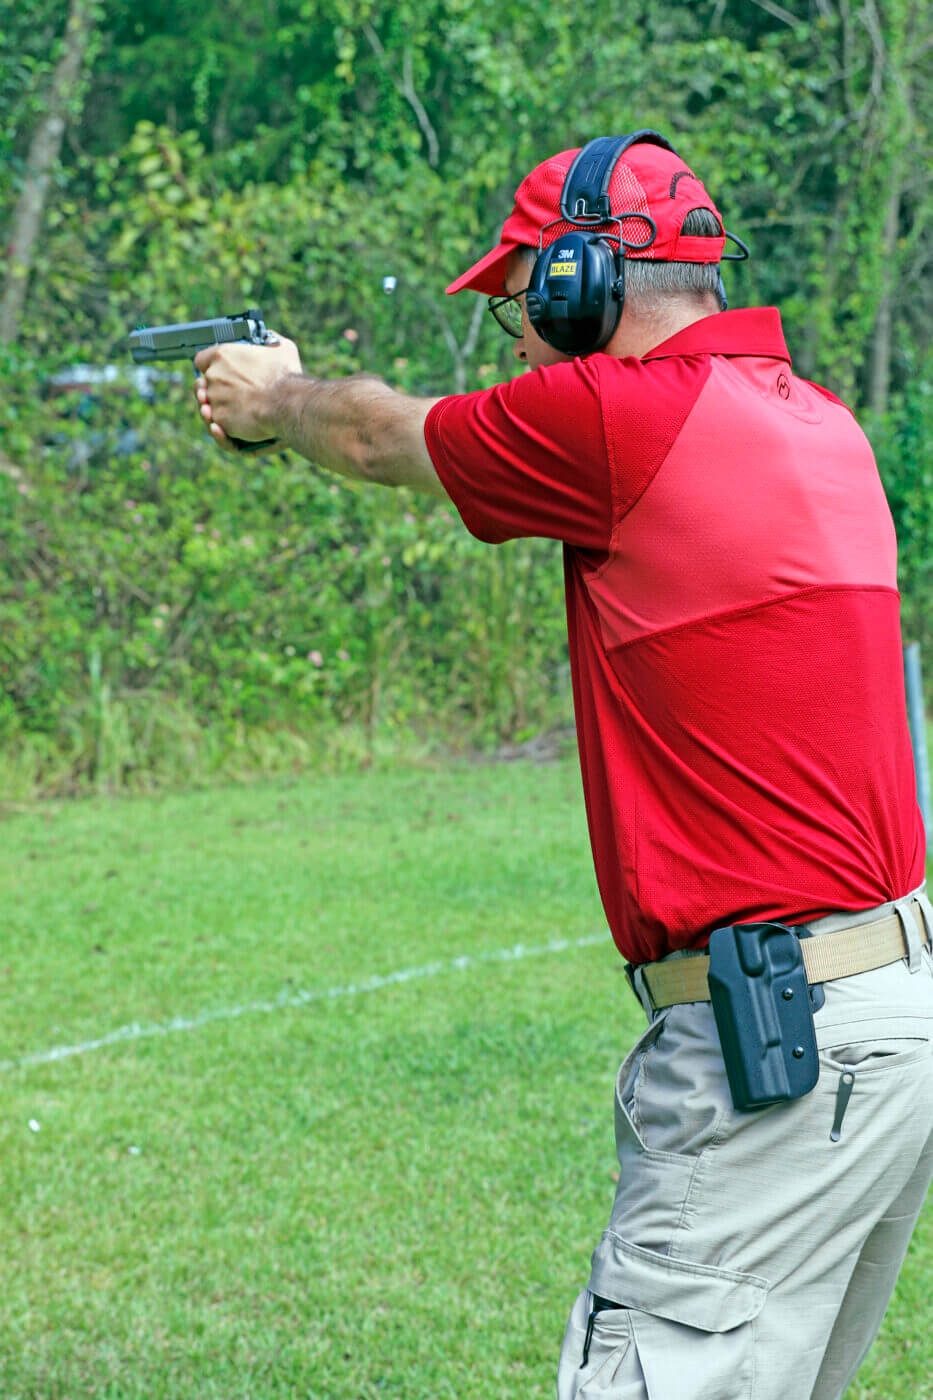 Col. Dave Blazek in a shooting match